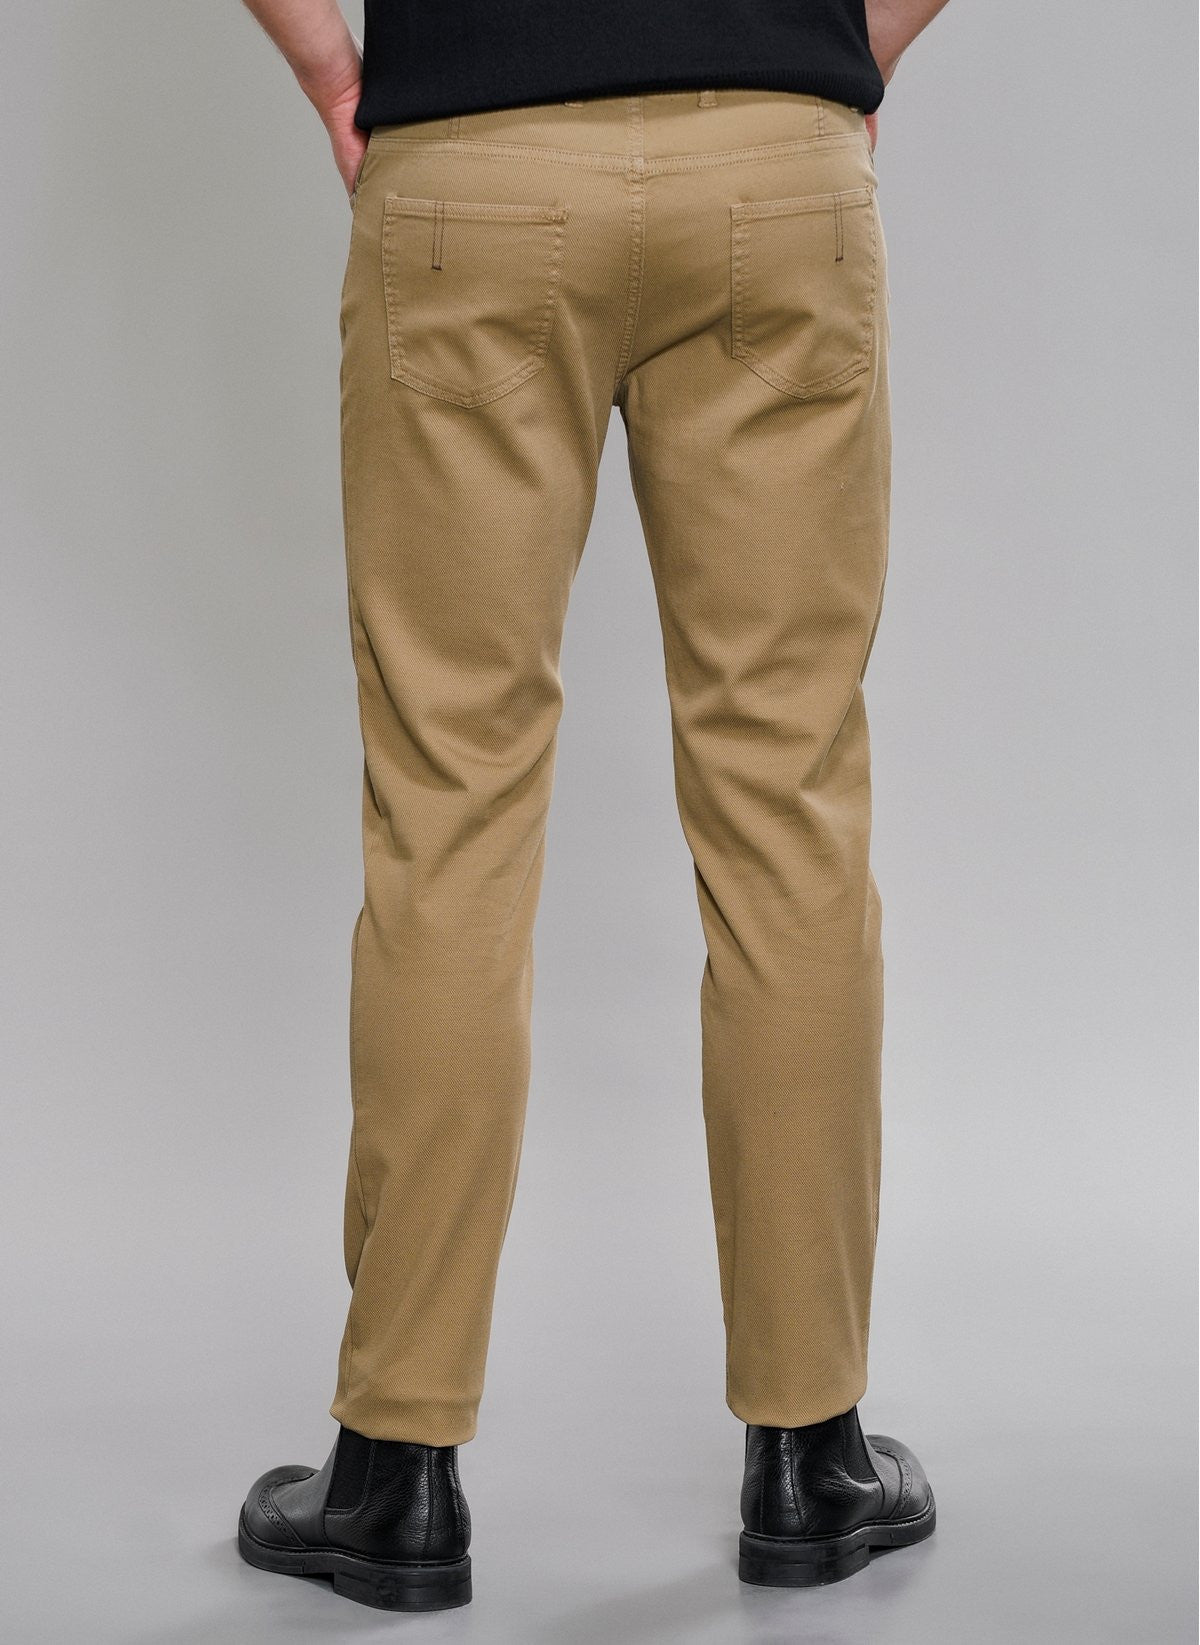 5-Pocket Slim Fit Pant in Camel